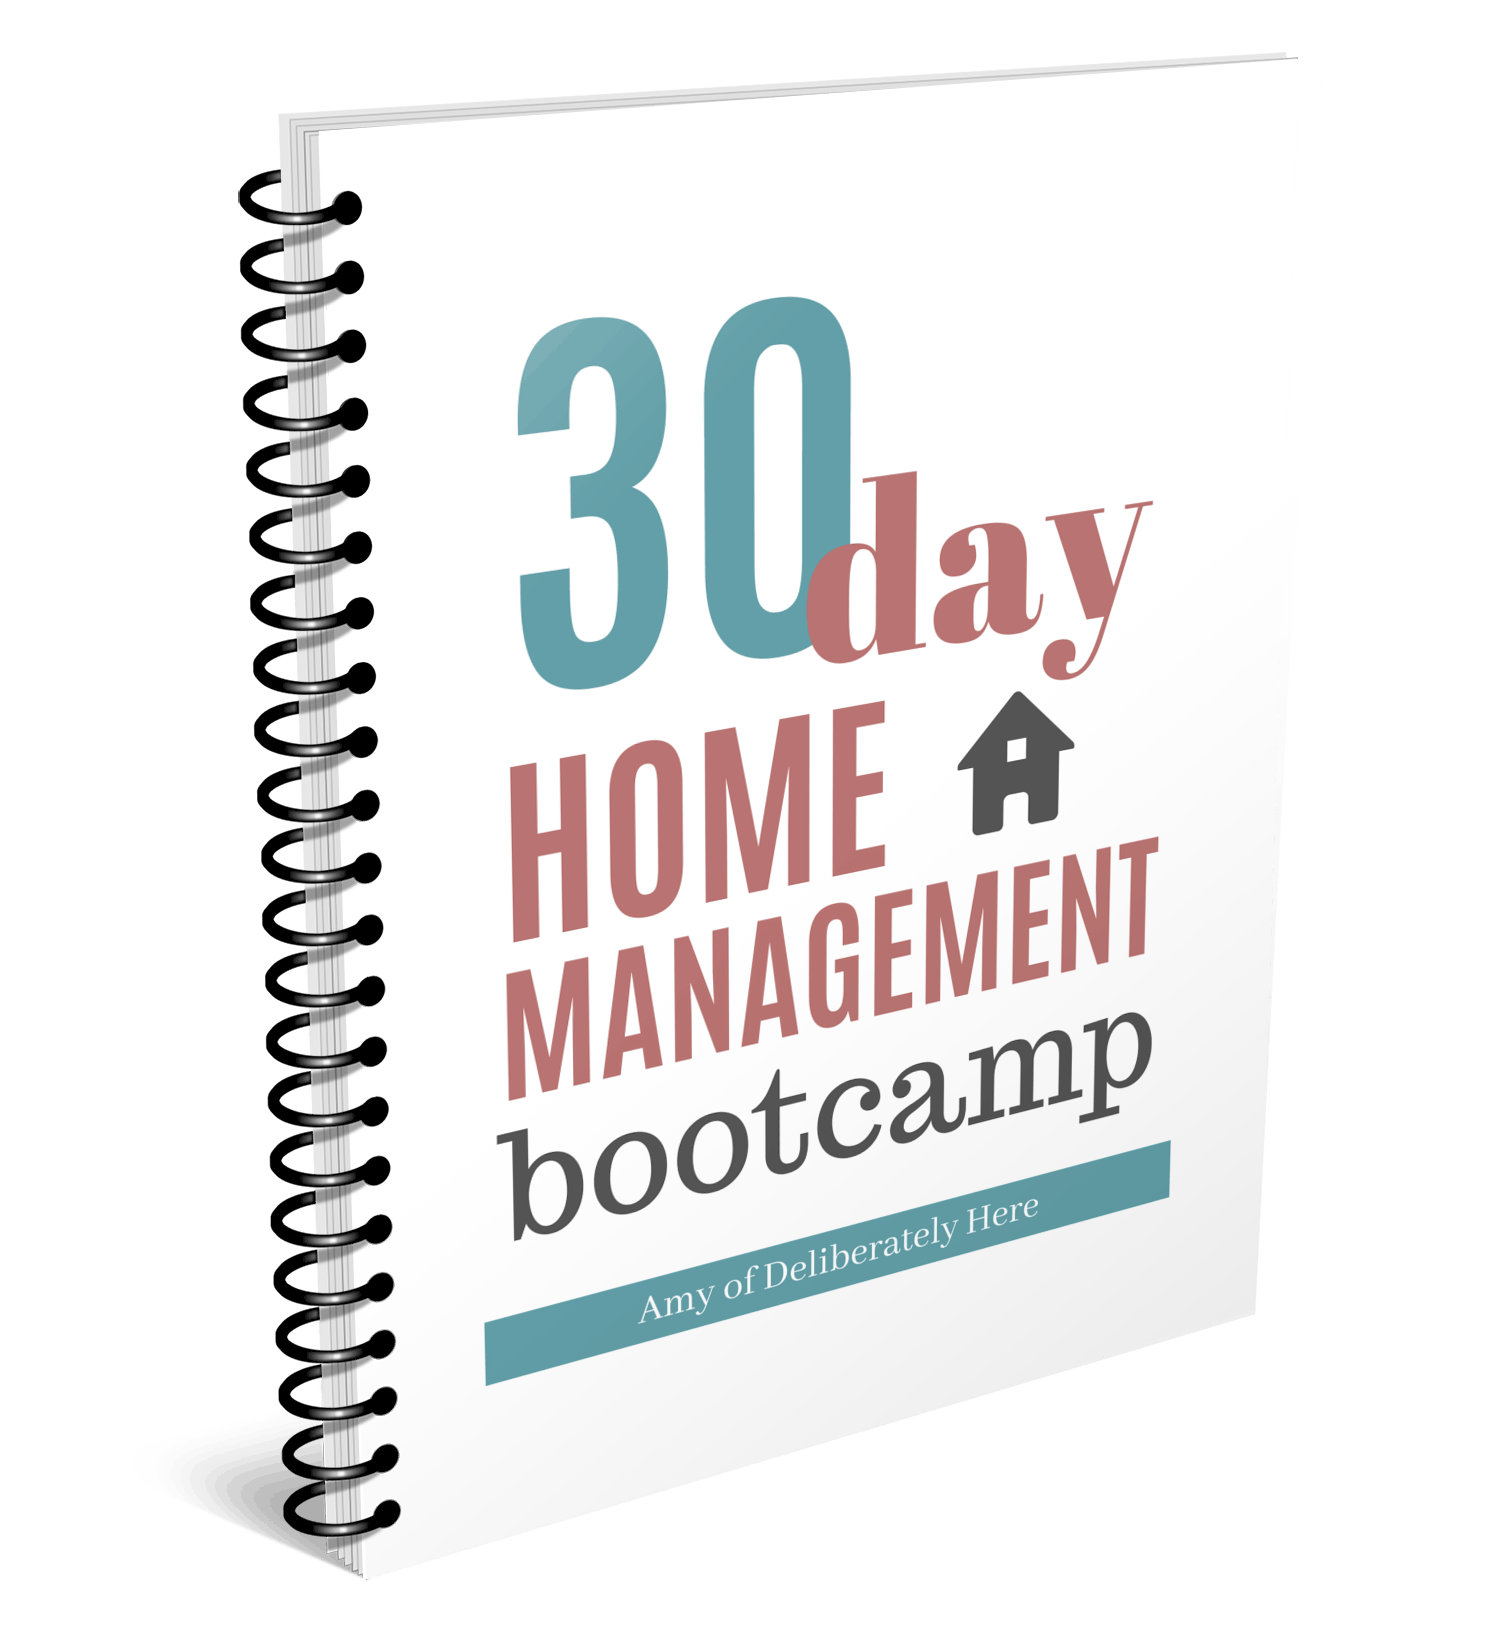 30 day home management bootcamp free